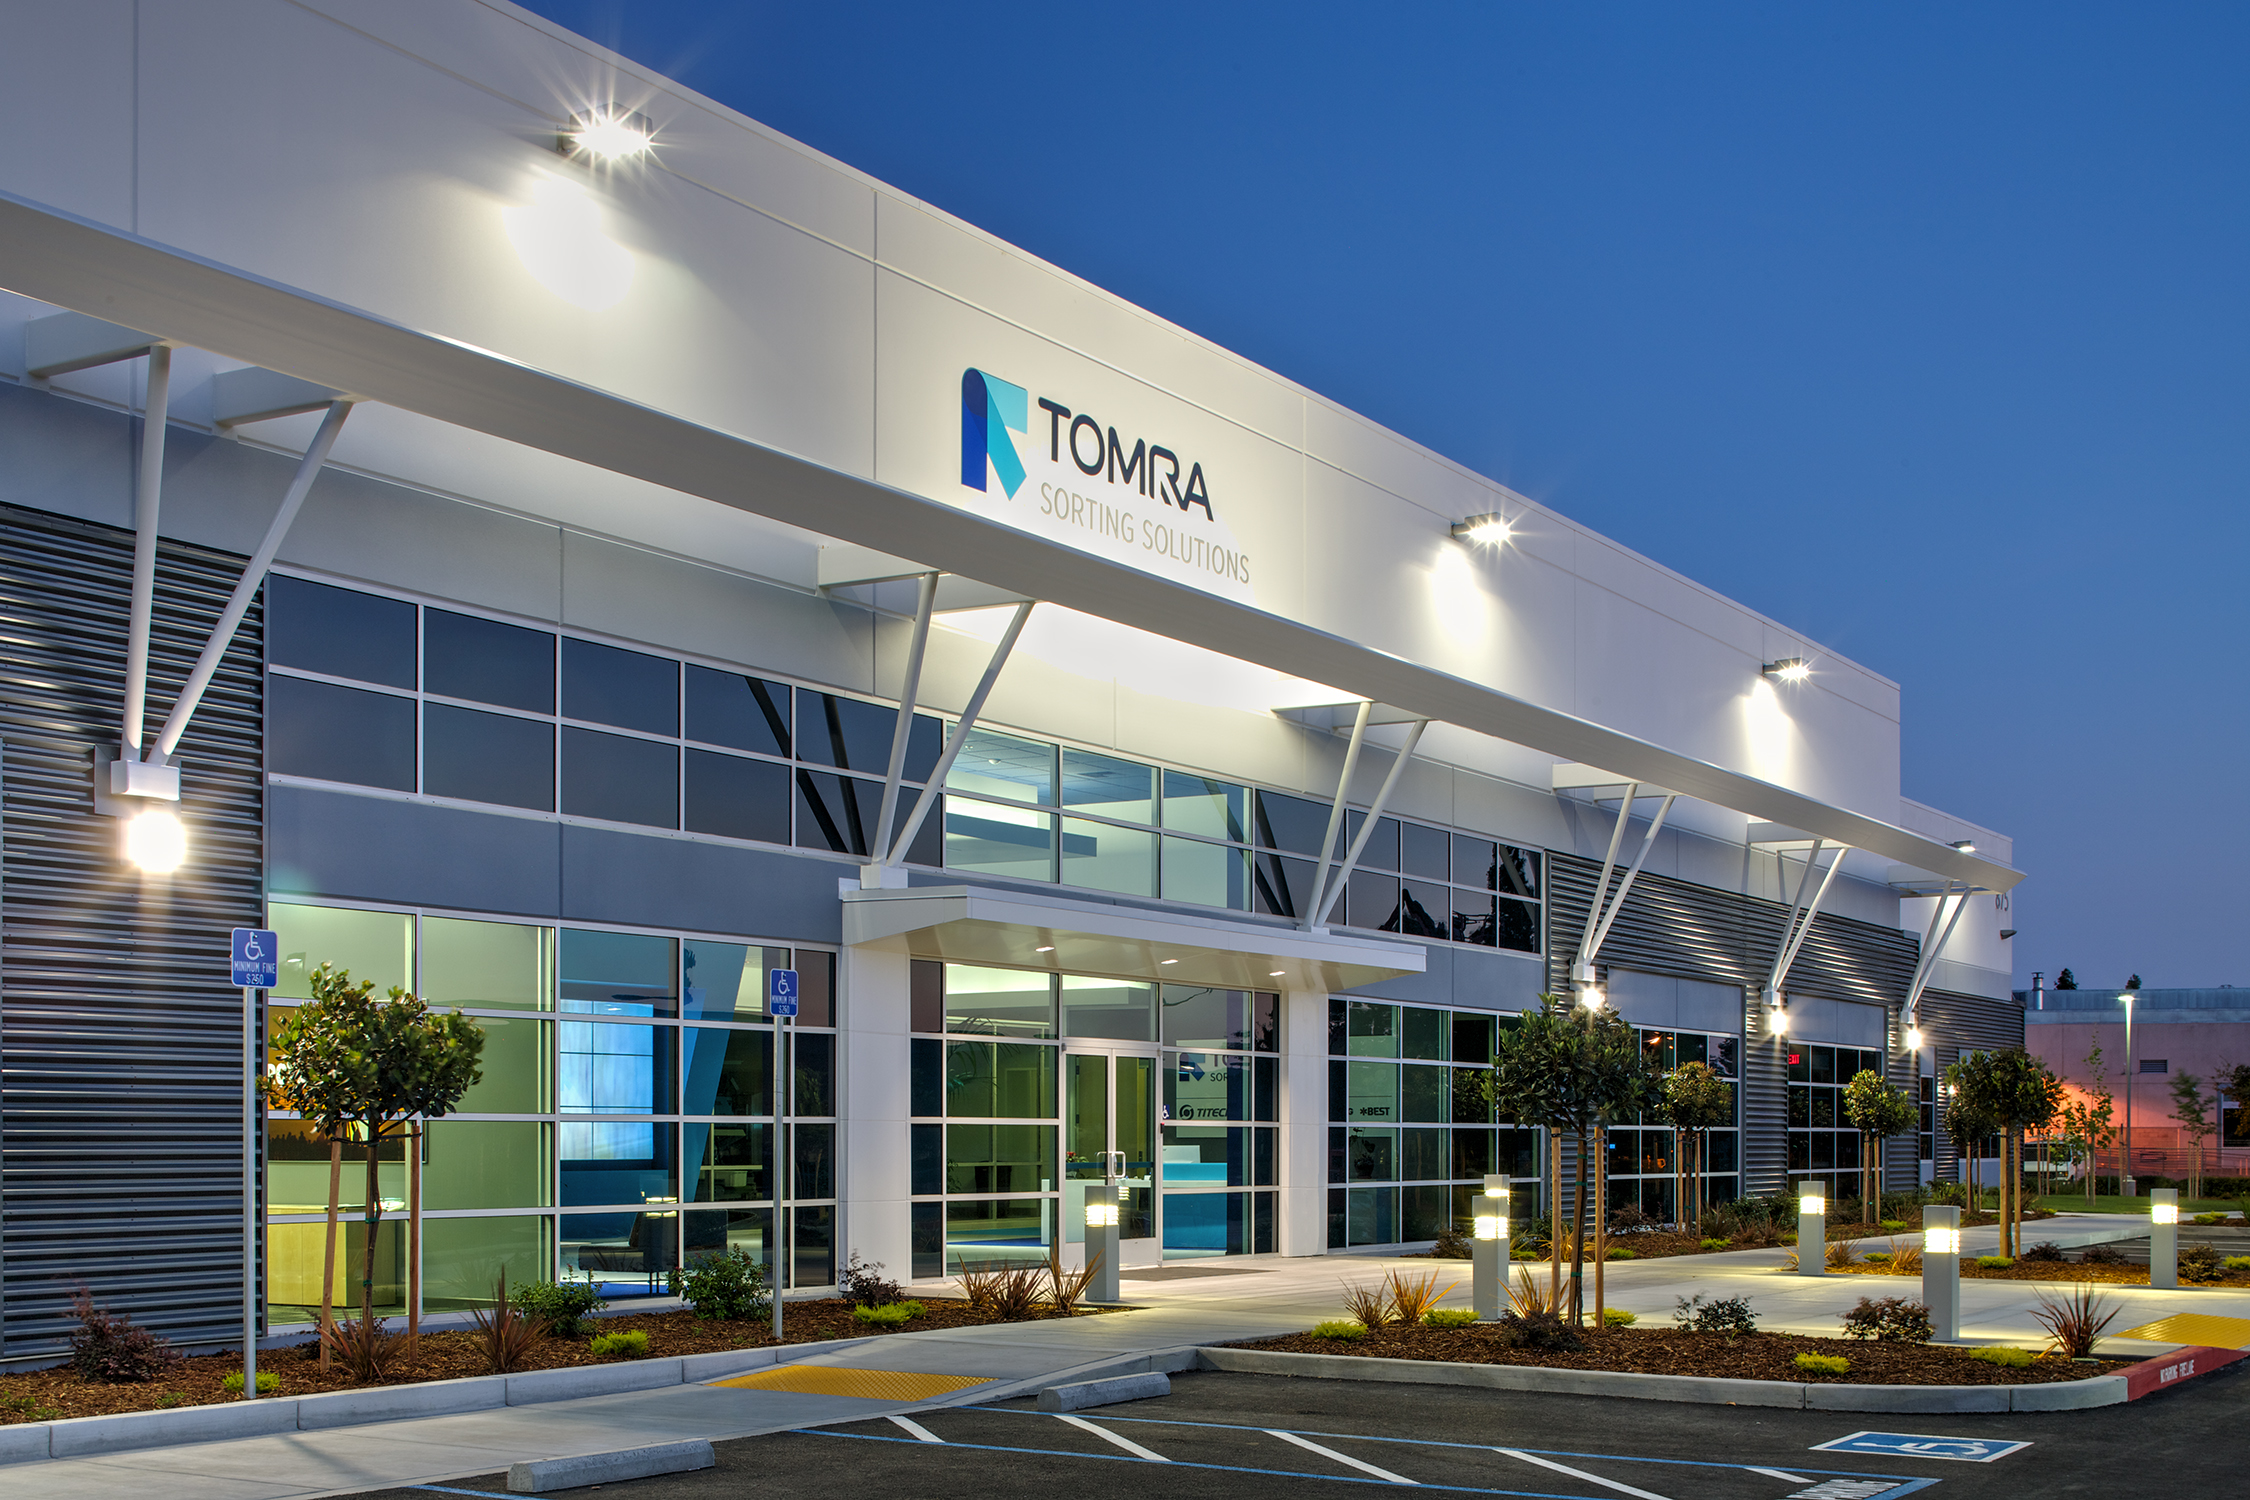 TOMRA Sorting Solutions North American Headquarters Wins 2014 TCA Award